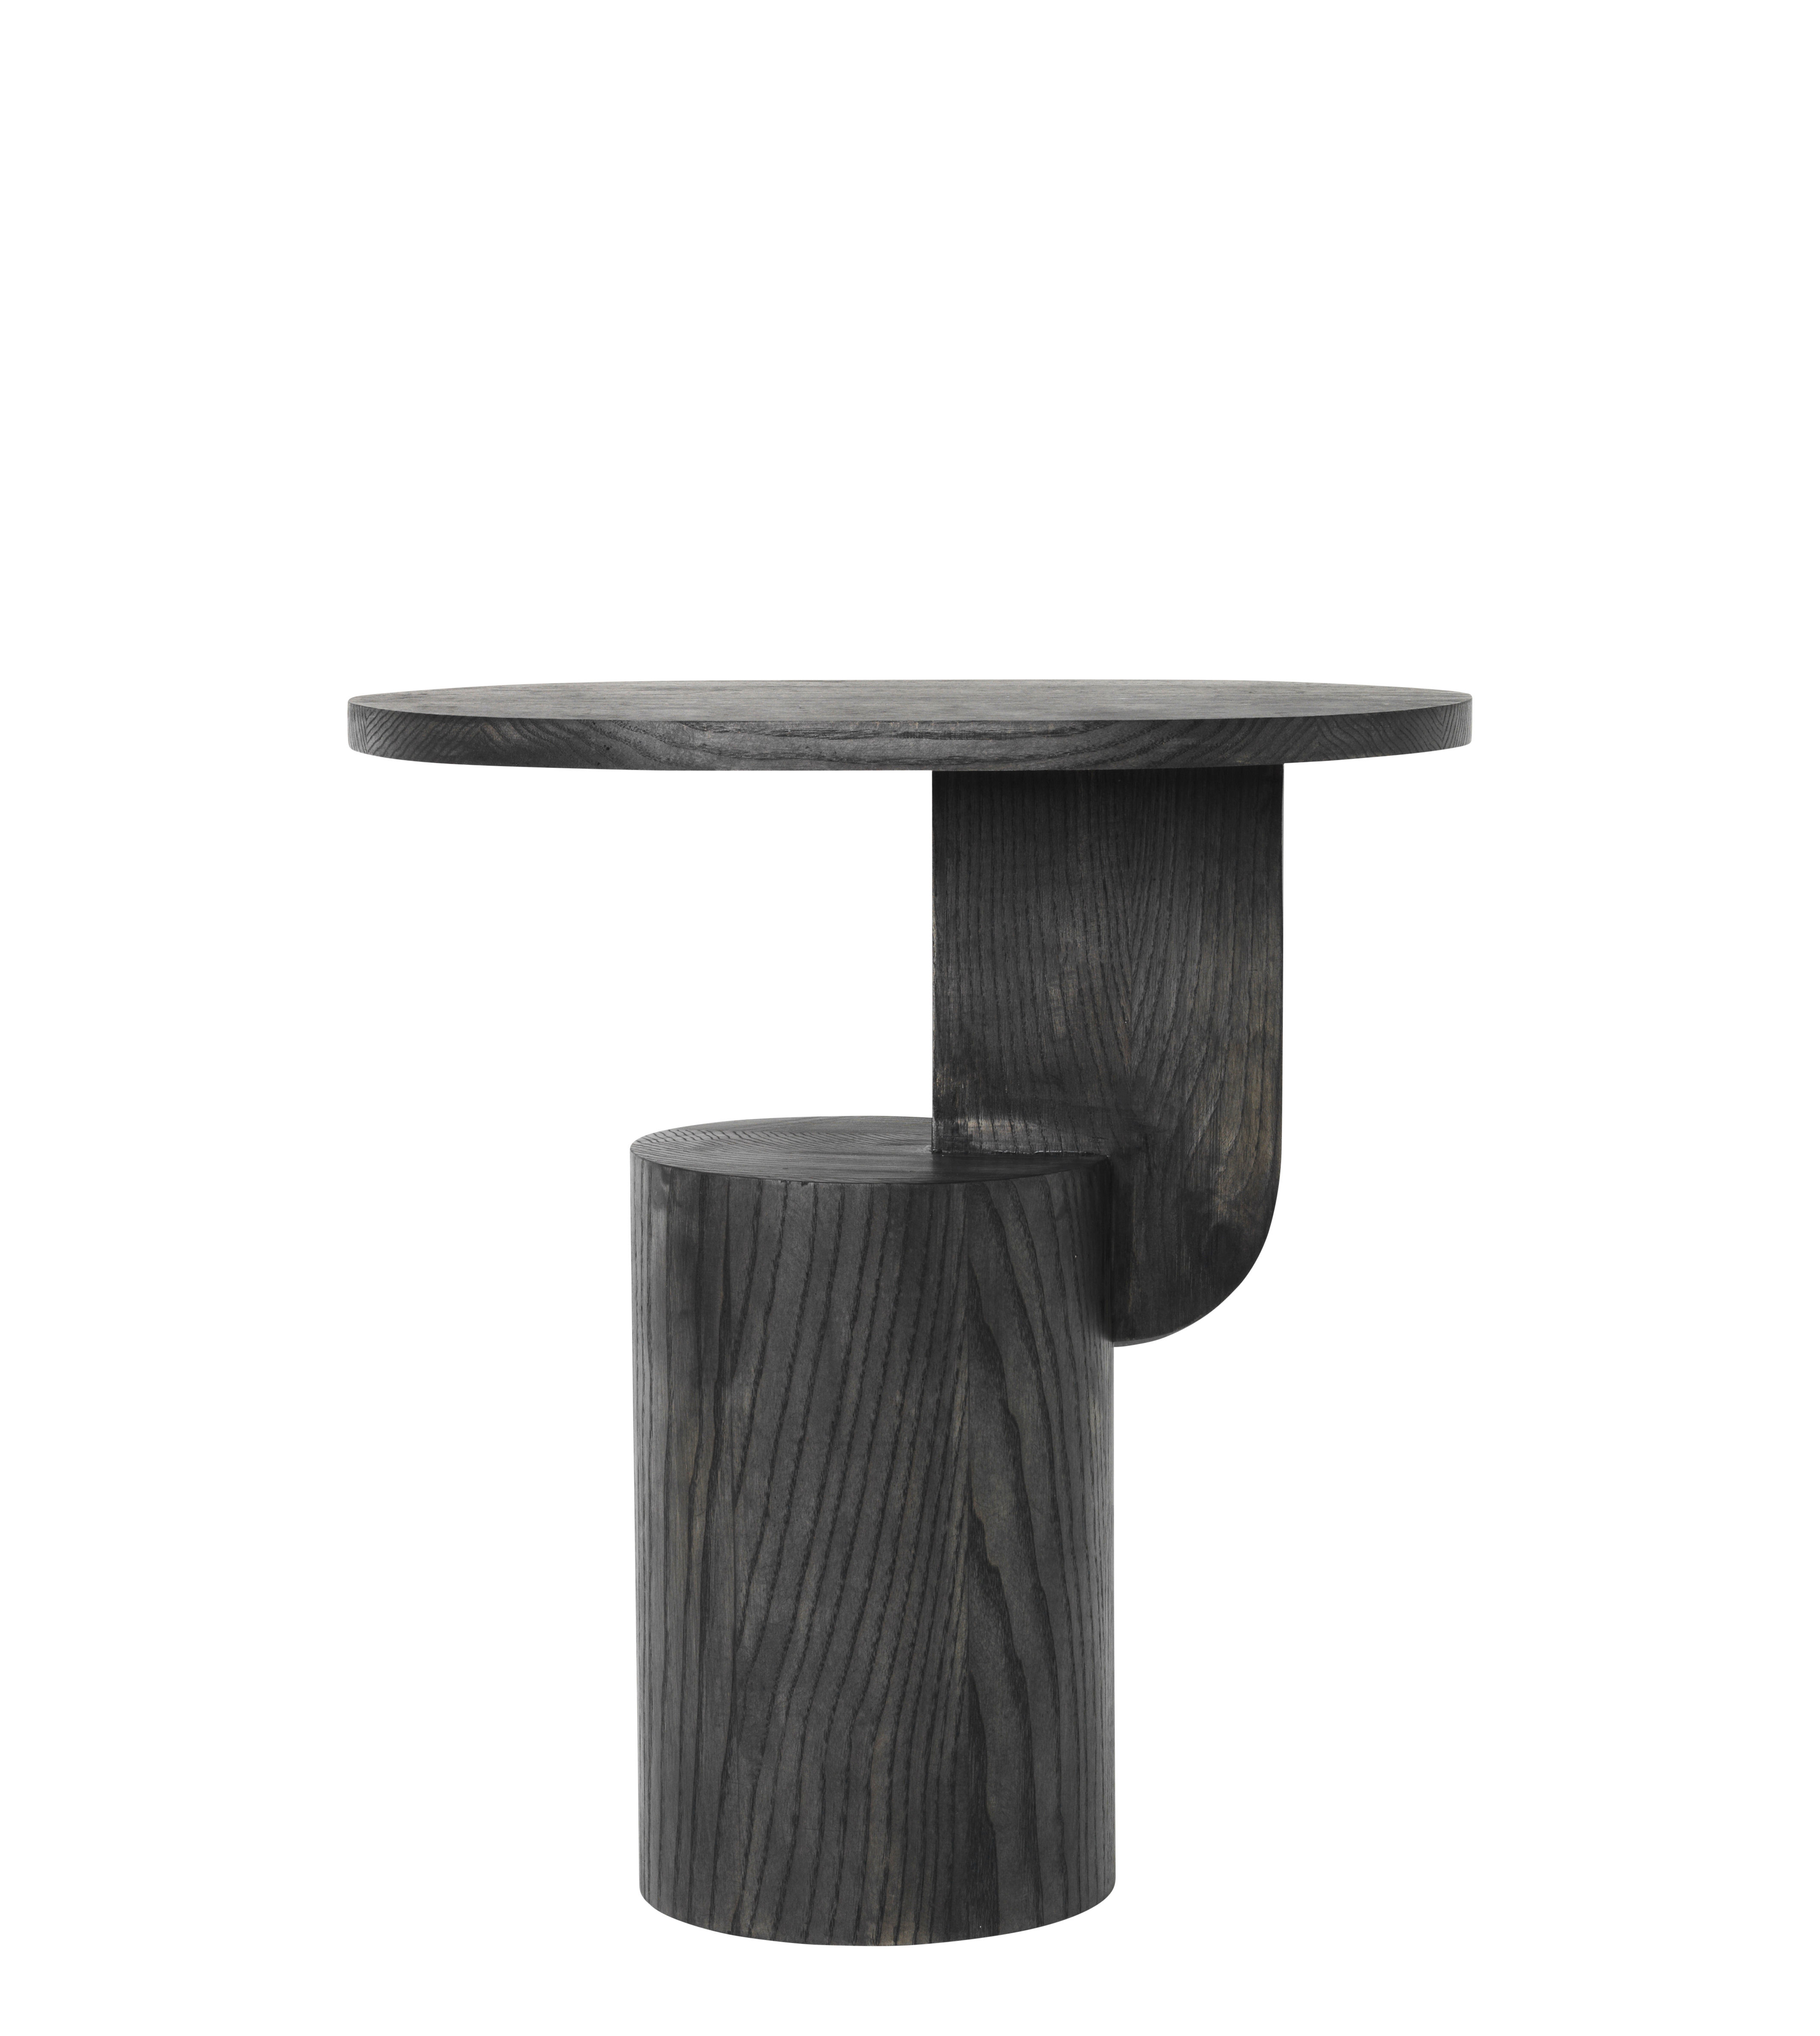 Furniture - Coffee Tables - Insert End table - / H 50 cm - Wood by Ferm Living - Black - Stained solid ash